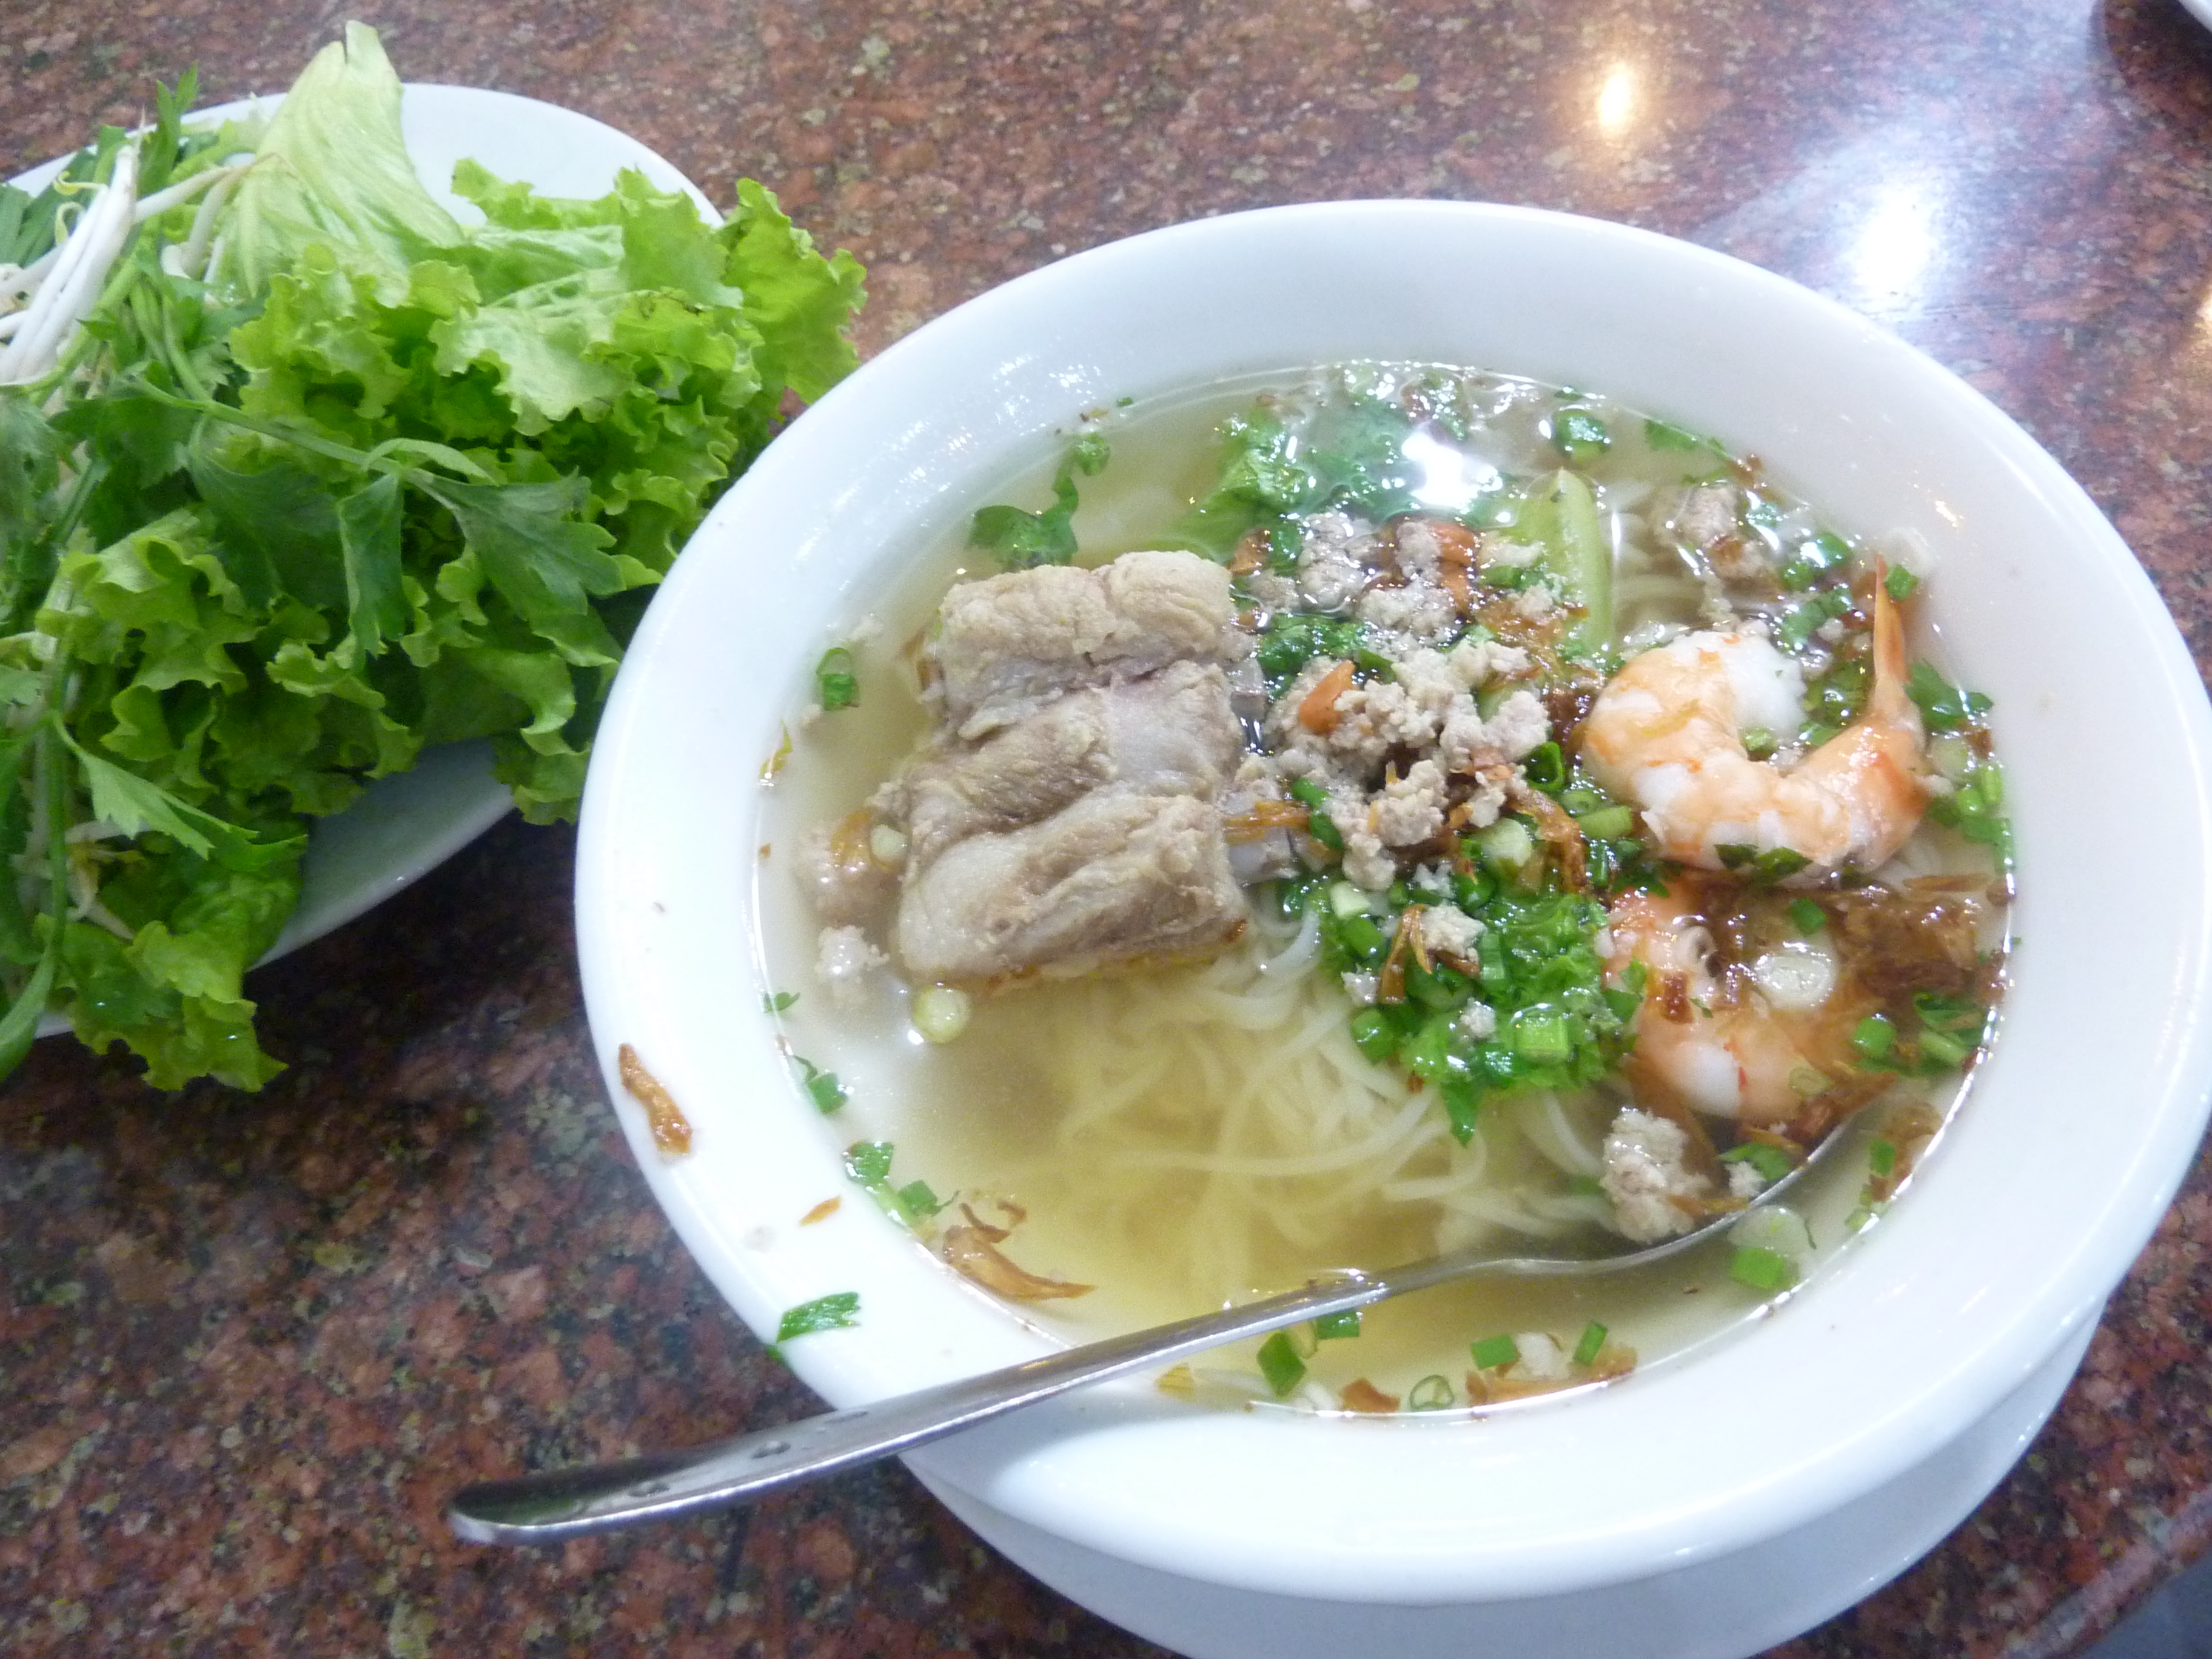 Not the bowl of pho I ate upon arrival. But a solid bowl nonetheless.